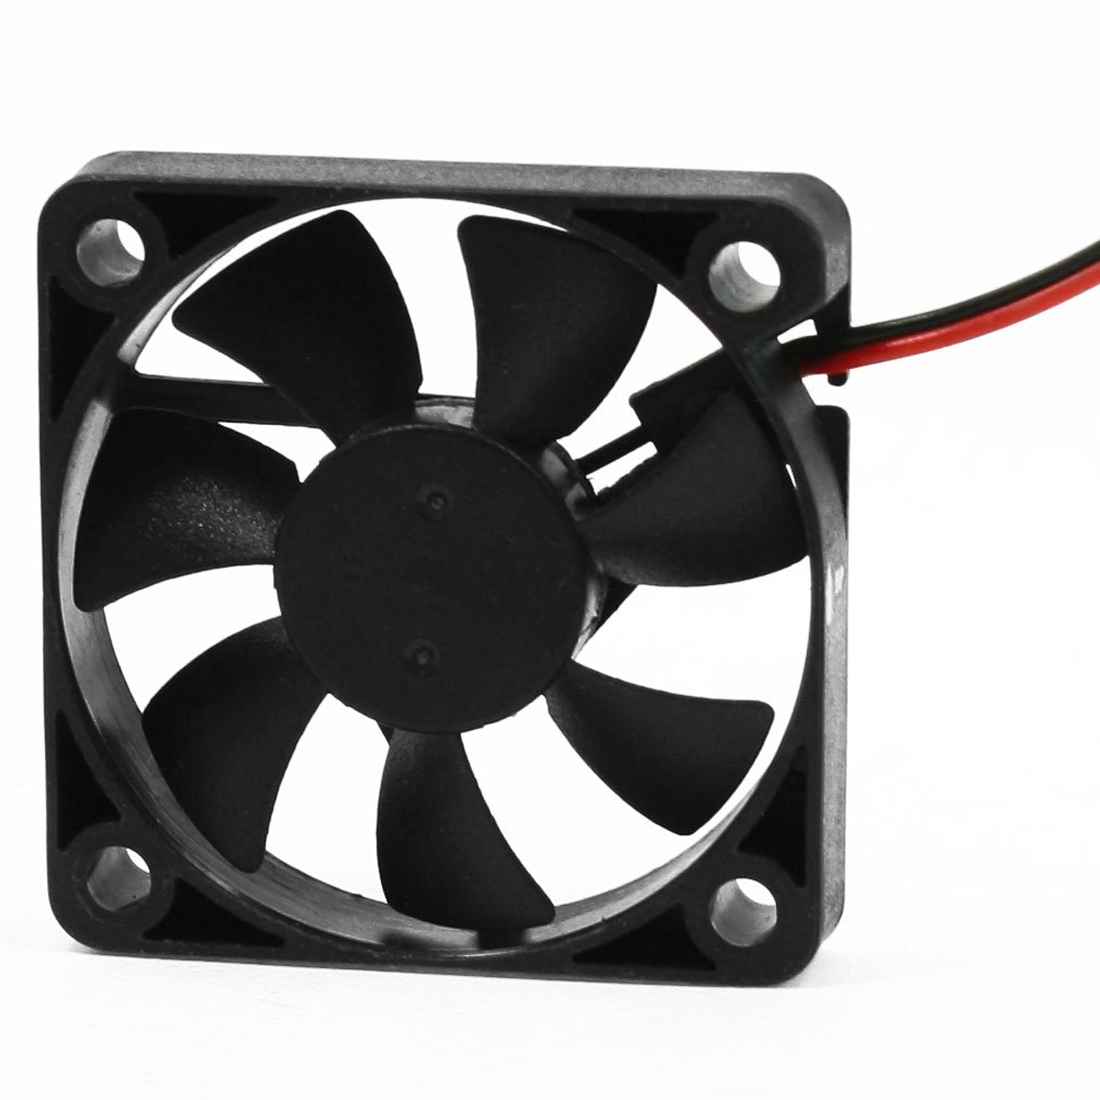 YOC Hot 50mm x 50mm x 10mm 5010 DC 12V 0.1A 2Pin Brushless Cooling Fan цены